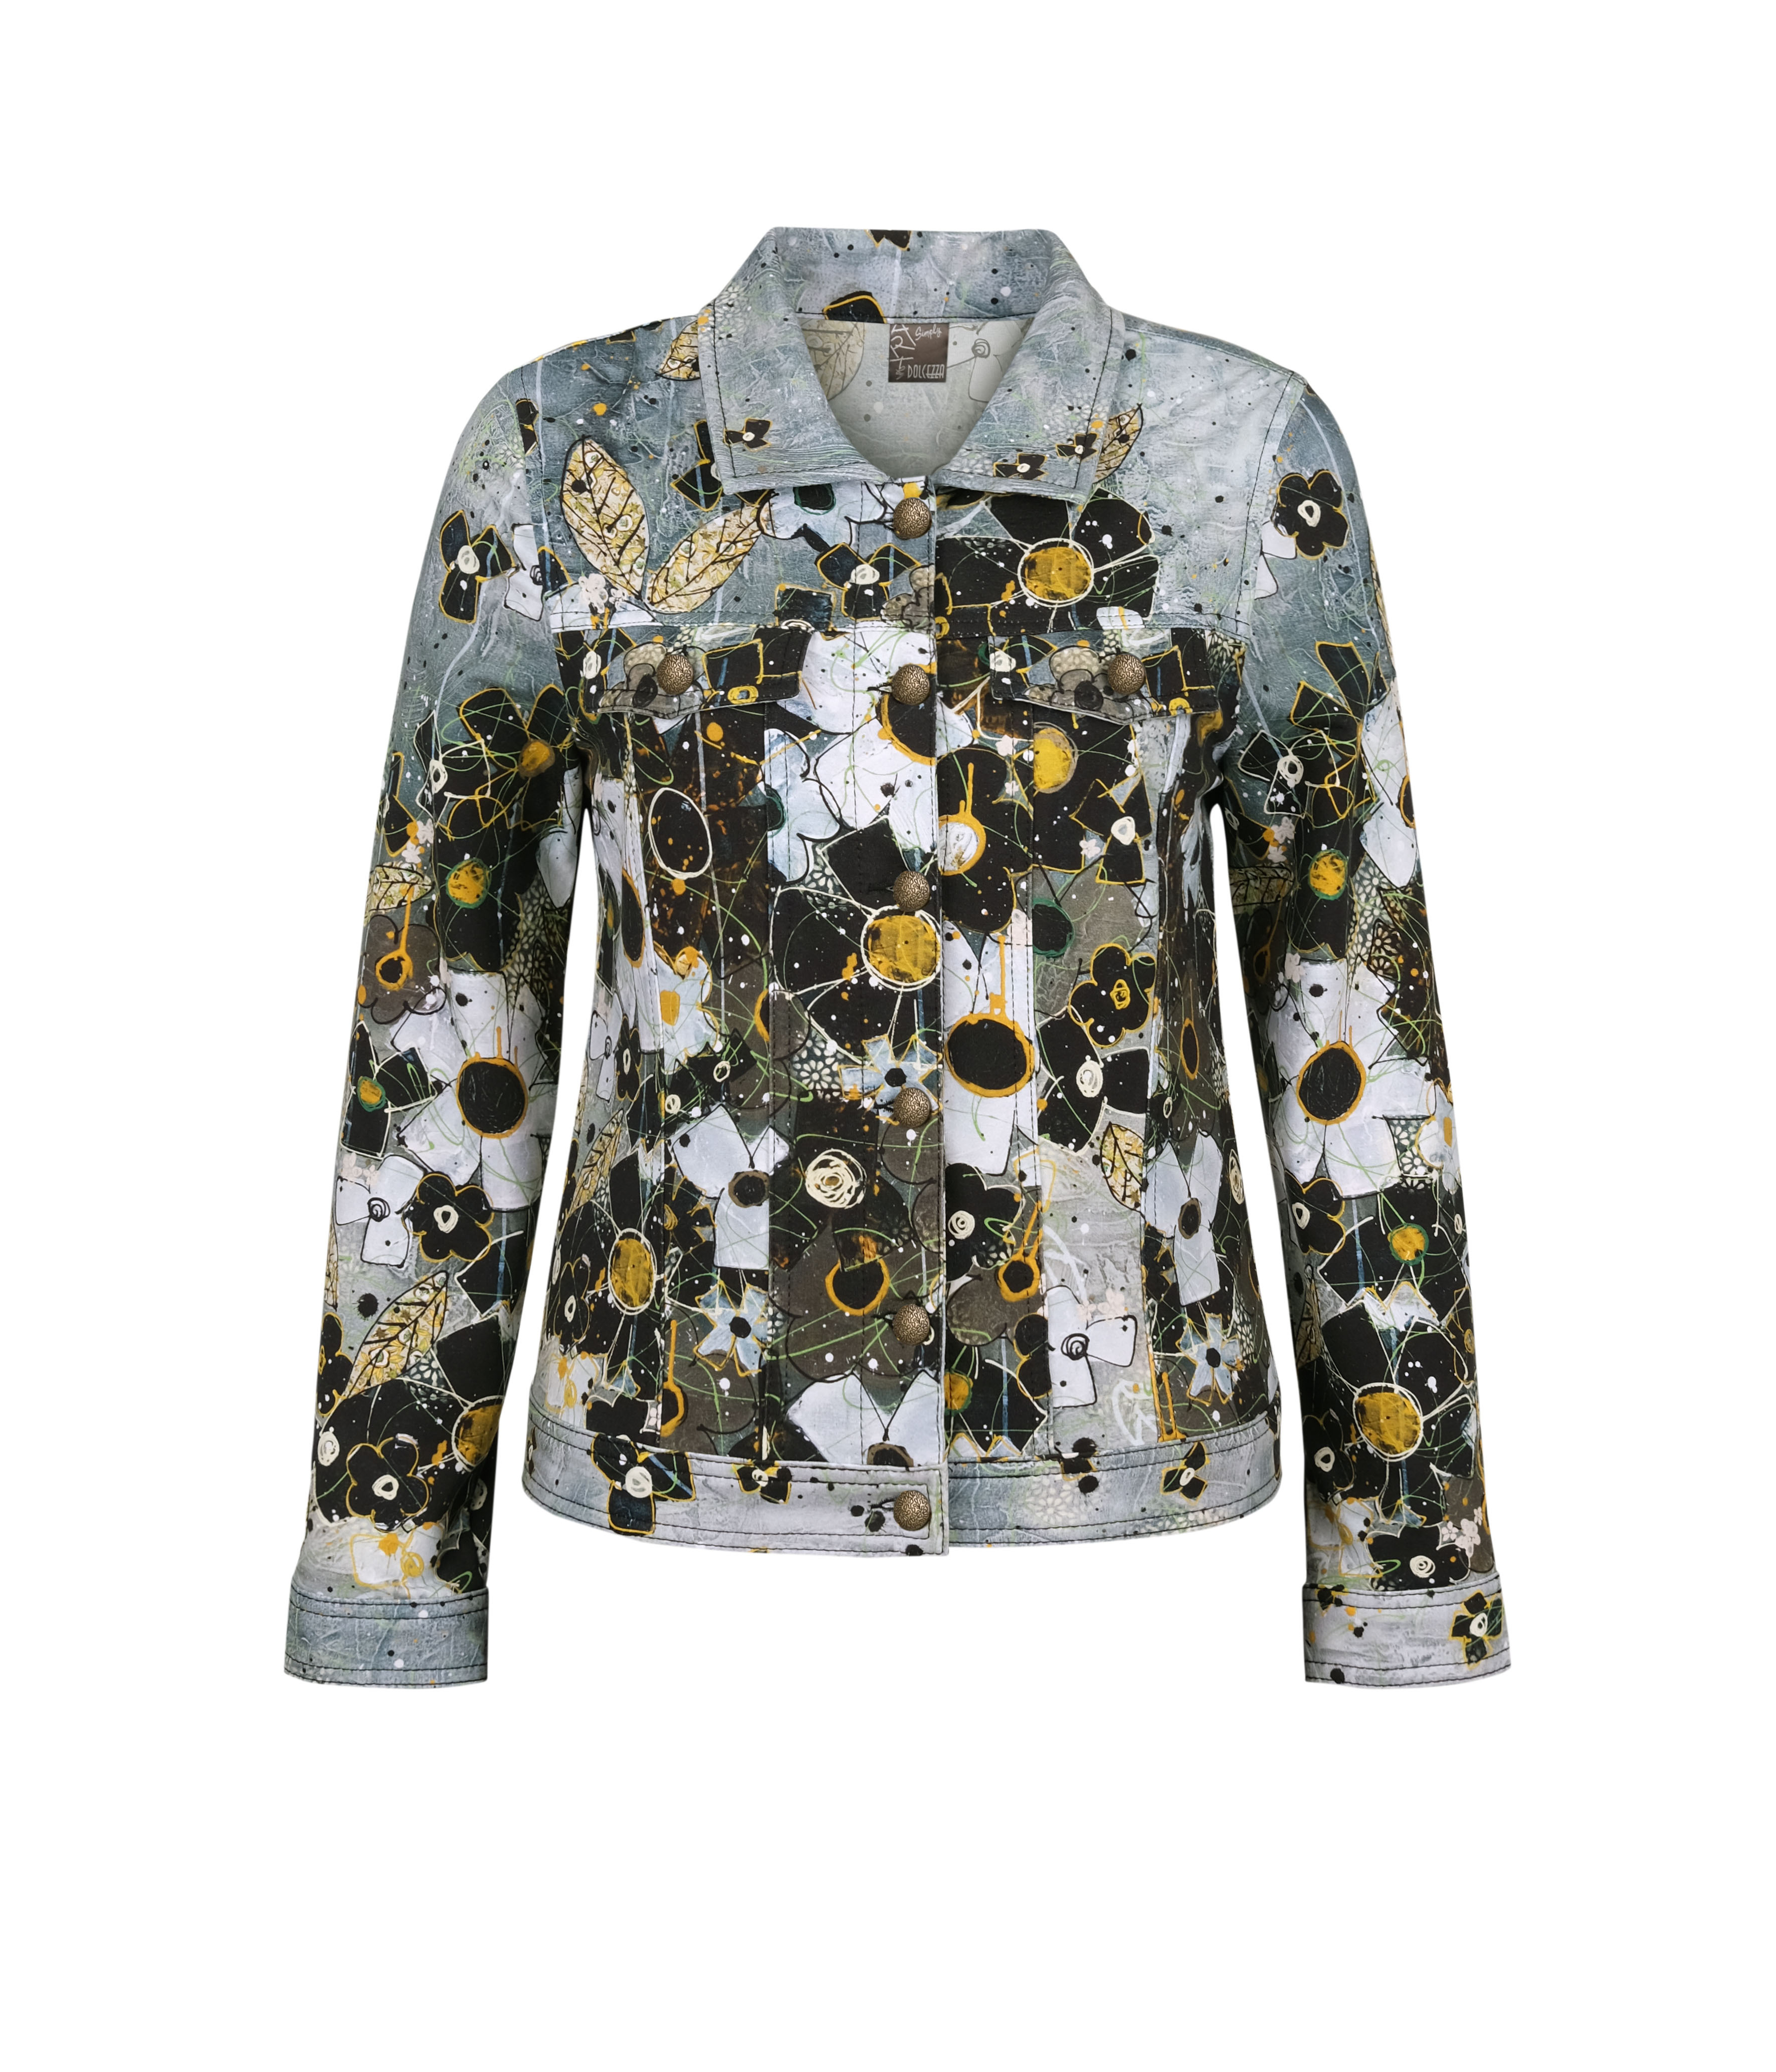 Simply Art Dolcezza: I Am Taking You Home Tonight Abstract Art Soft Denim Jacket (1 Available at Special Price!)